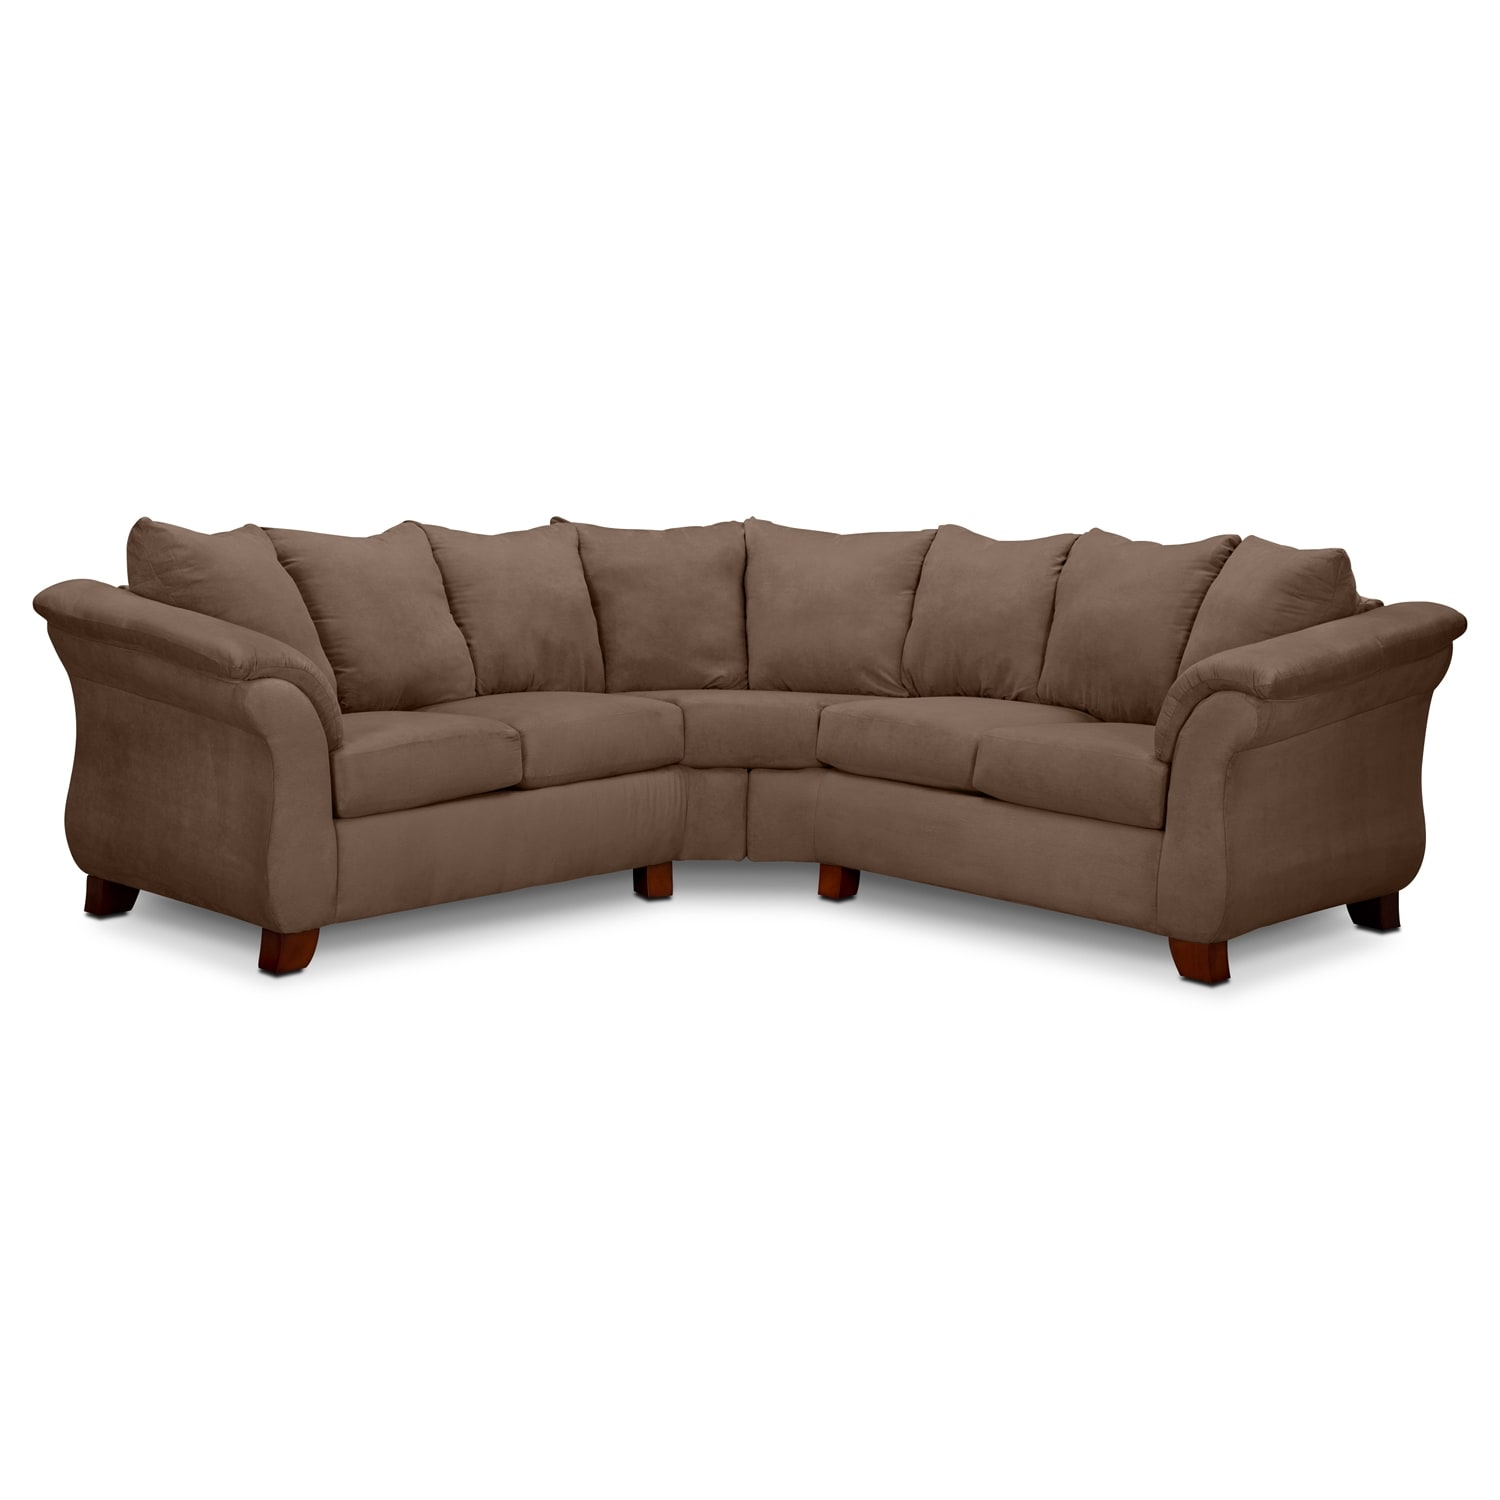 Adrian 2-Piece Sectional - Taupe